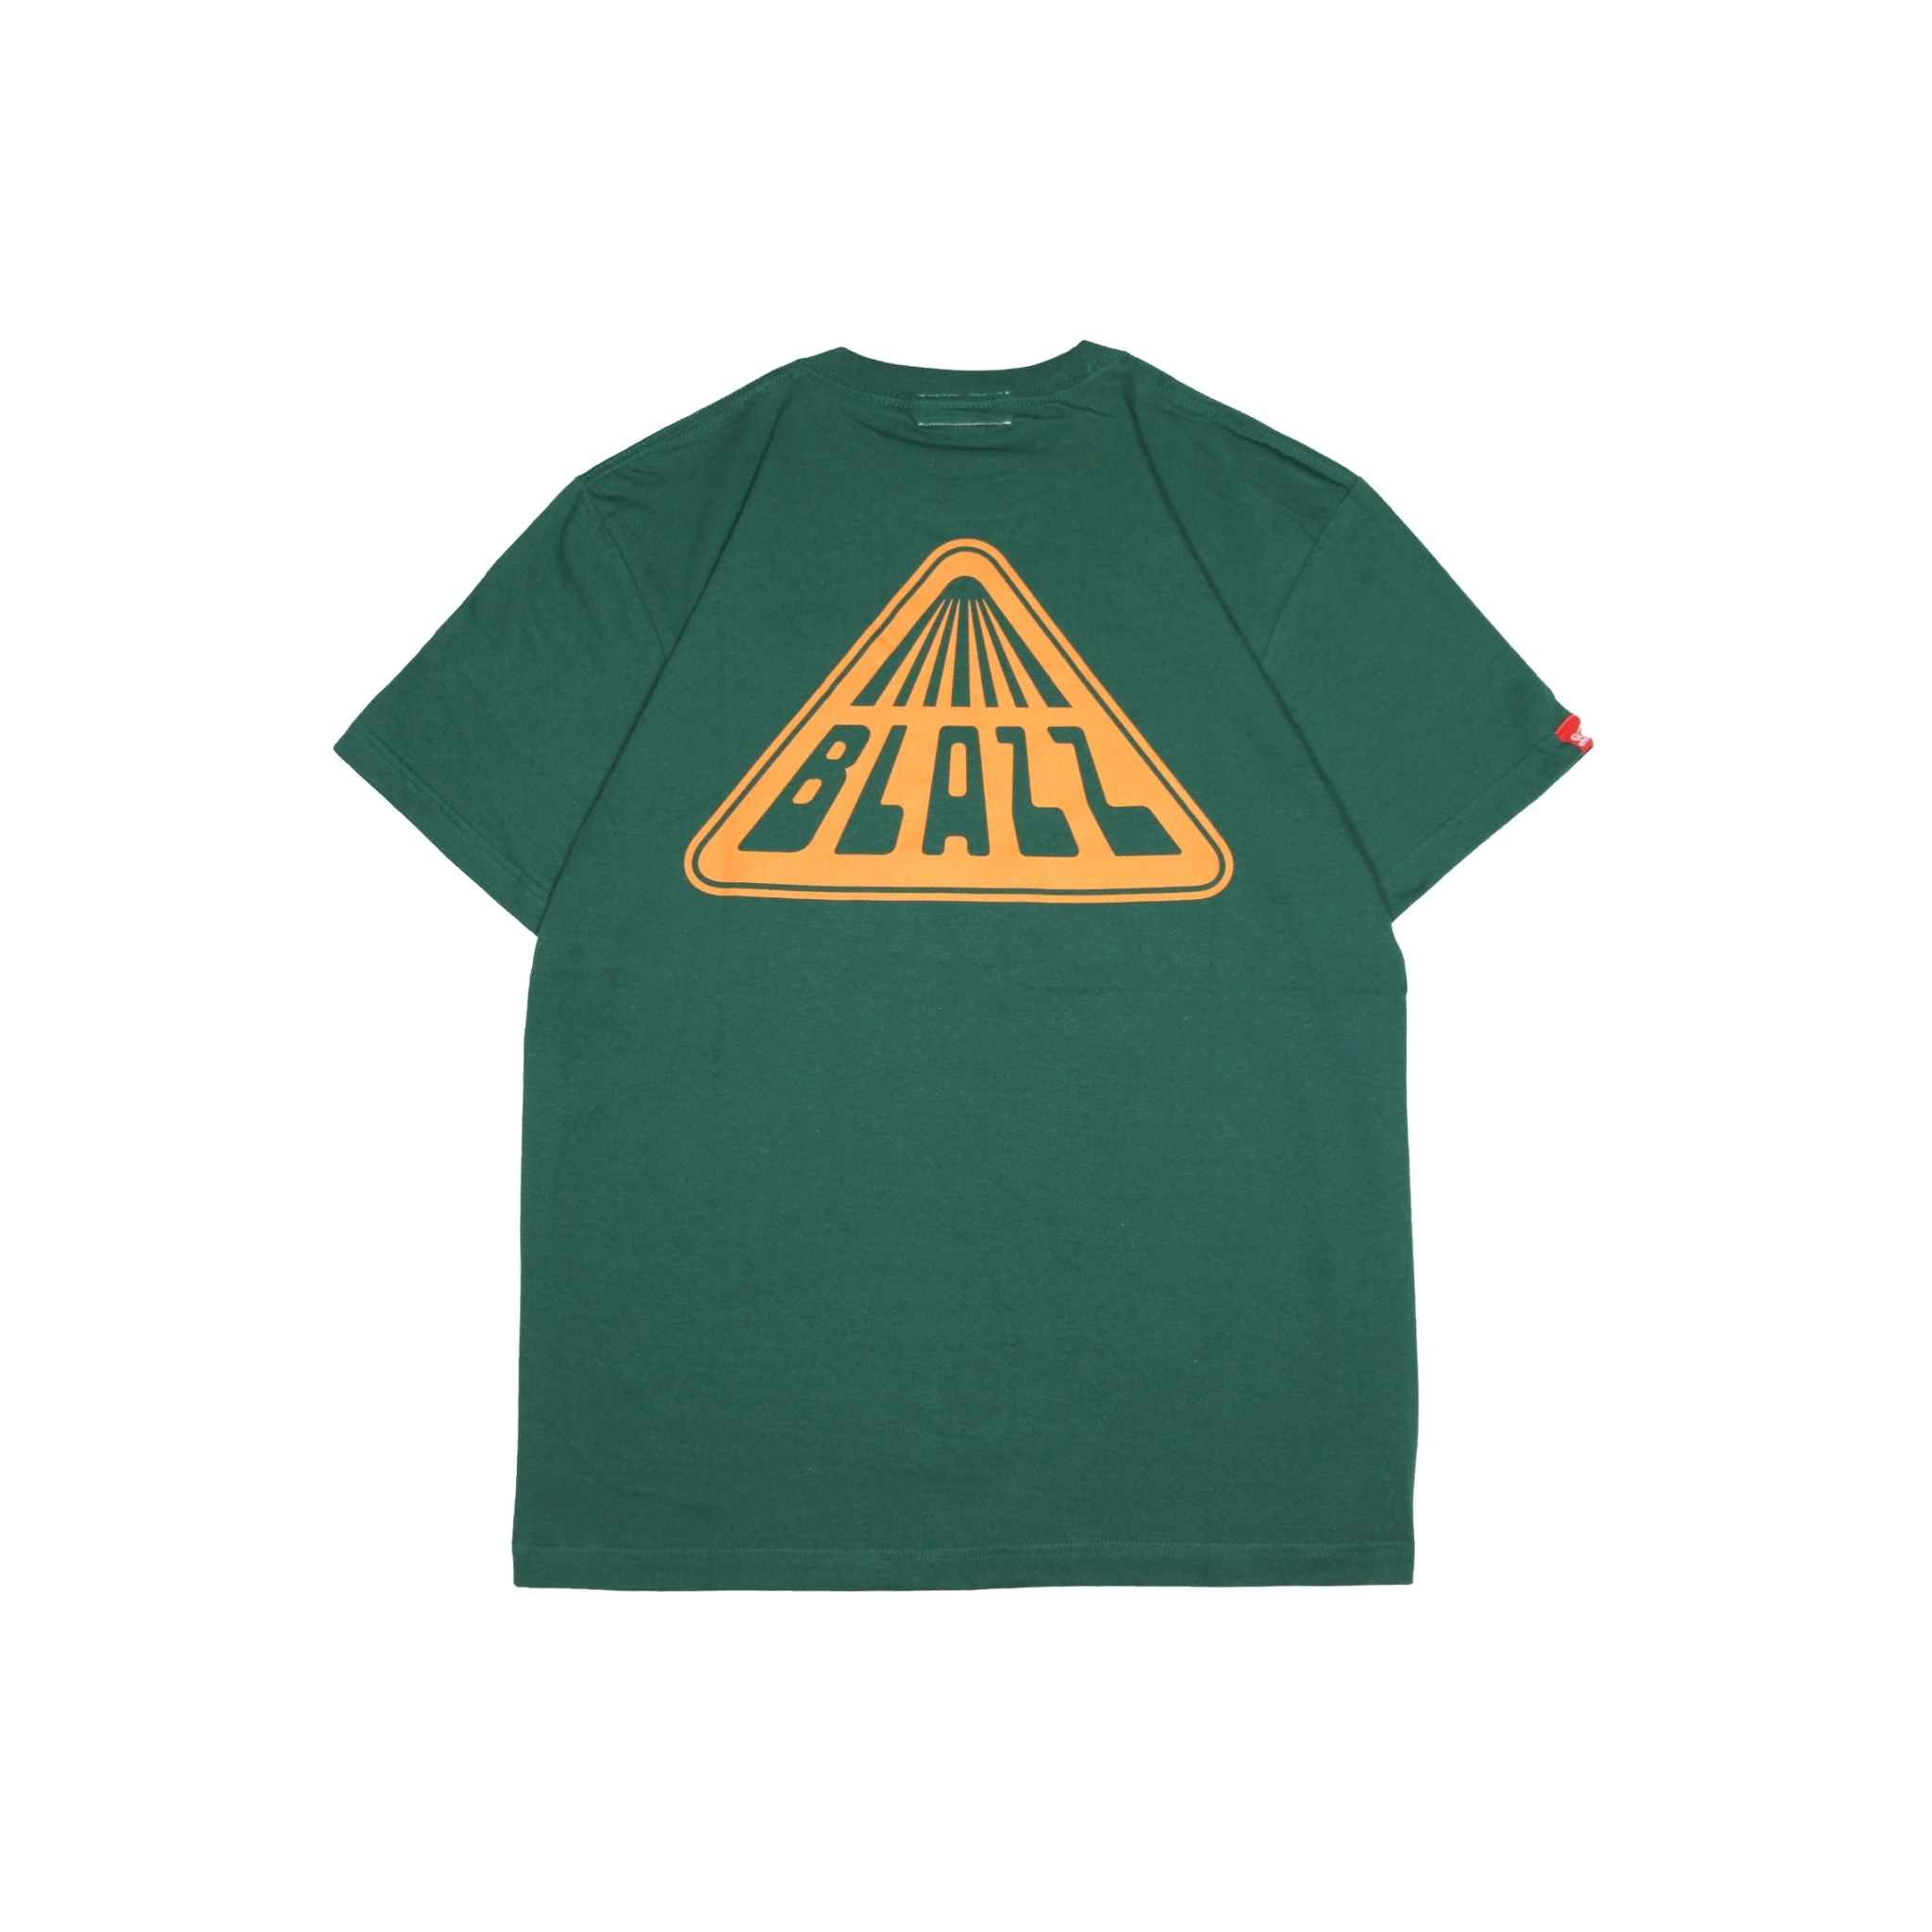 BL LAB 20 Improvement TEE [DEEP GREEN/ORANGE]